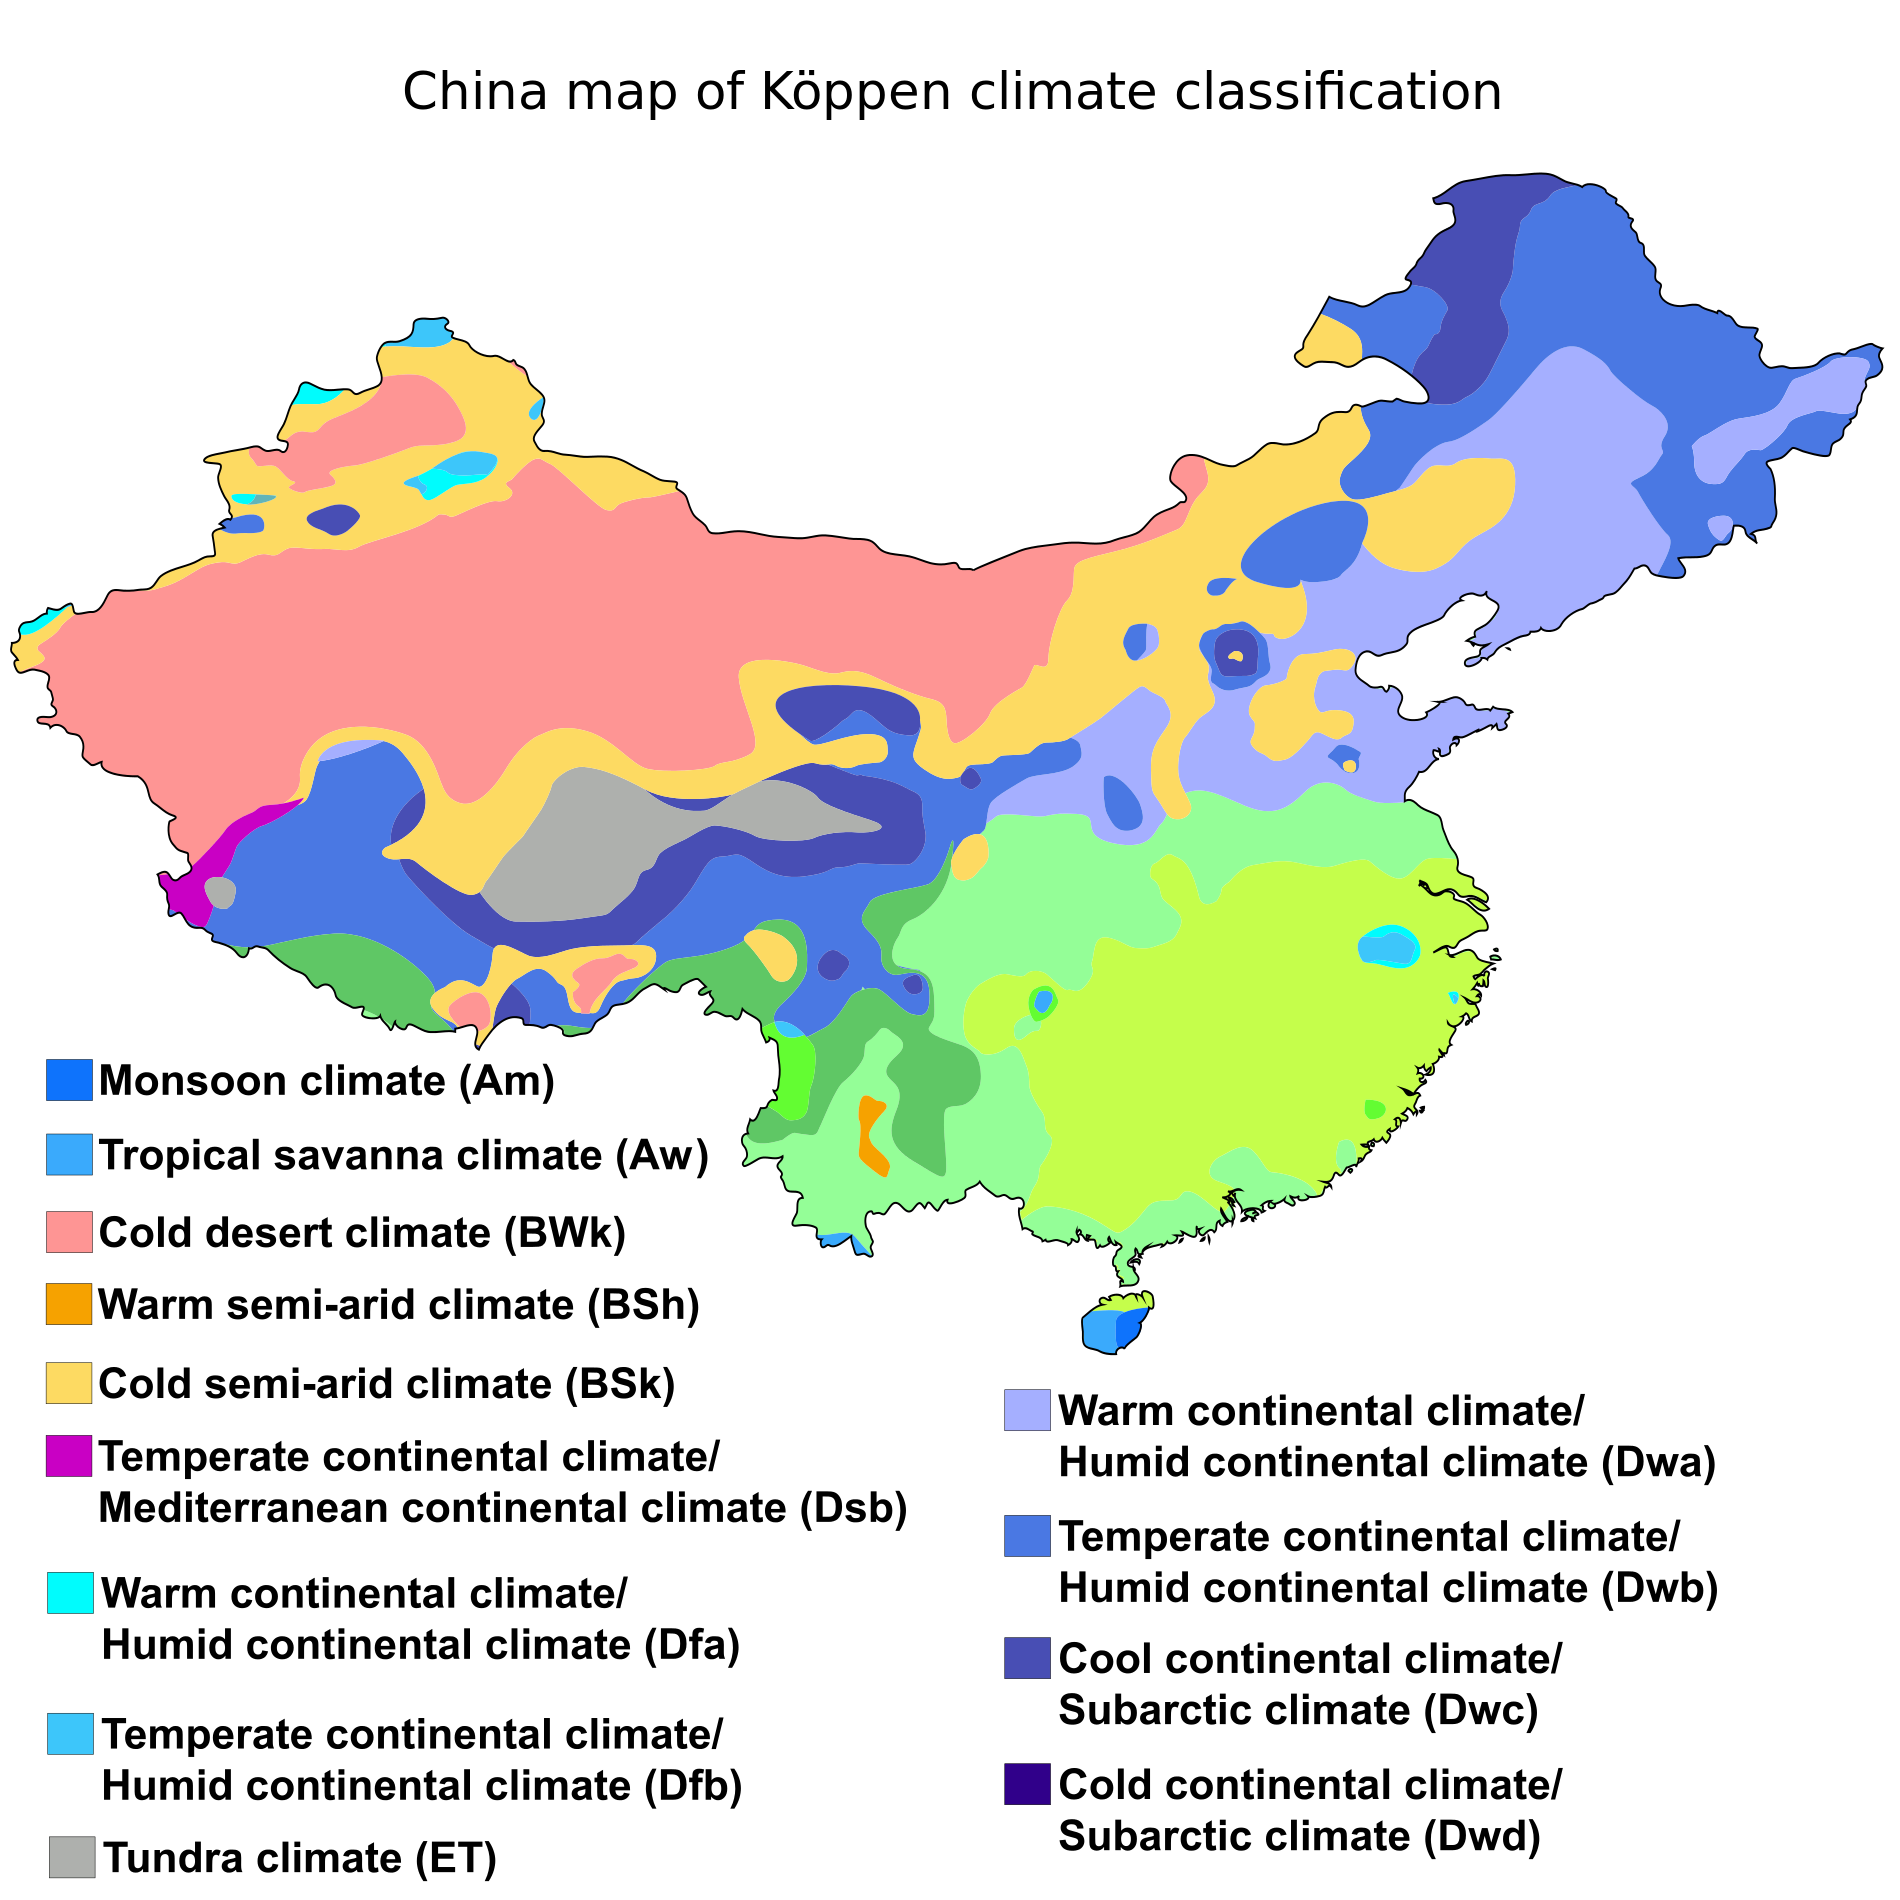 China transparent geography. K ppen climate classification